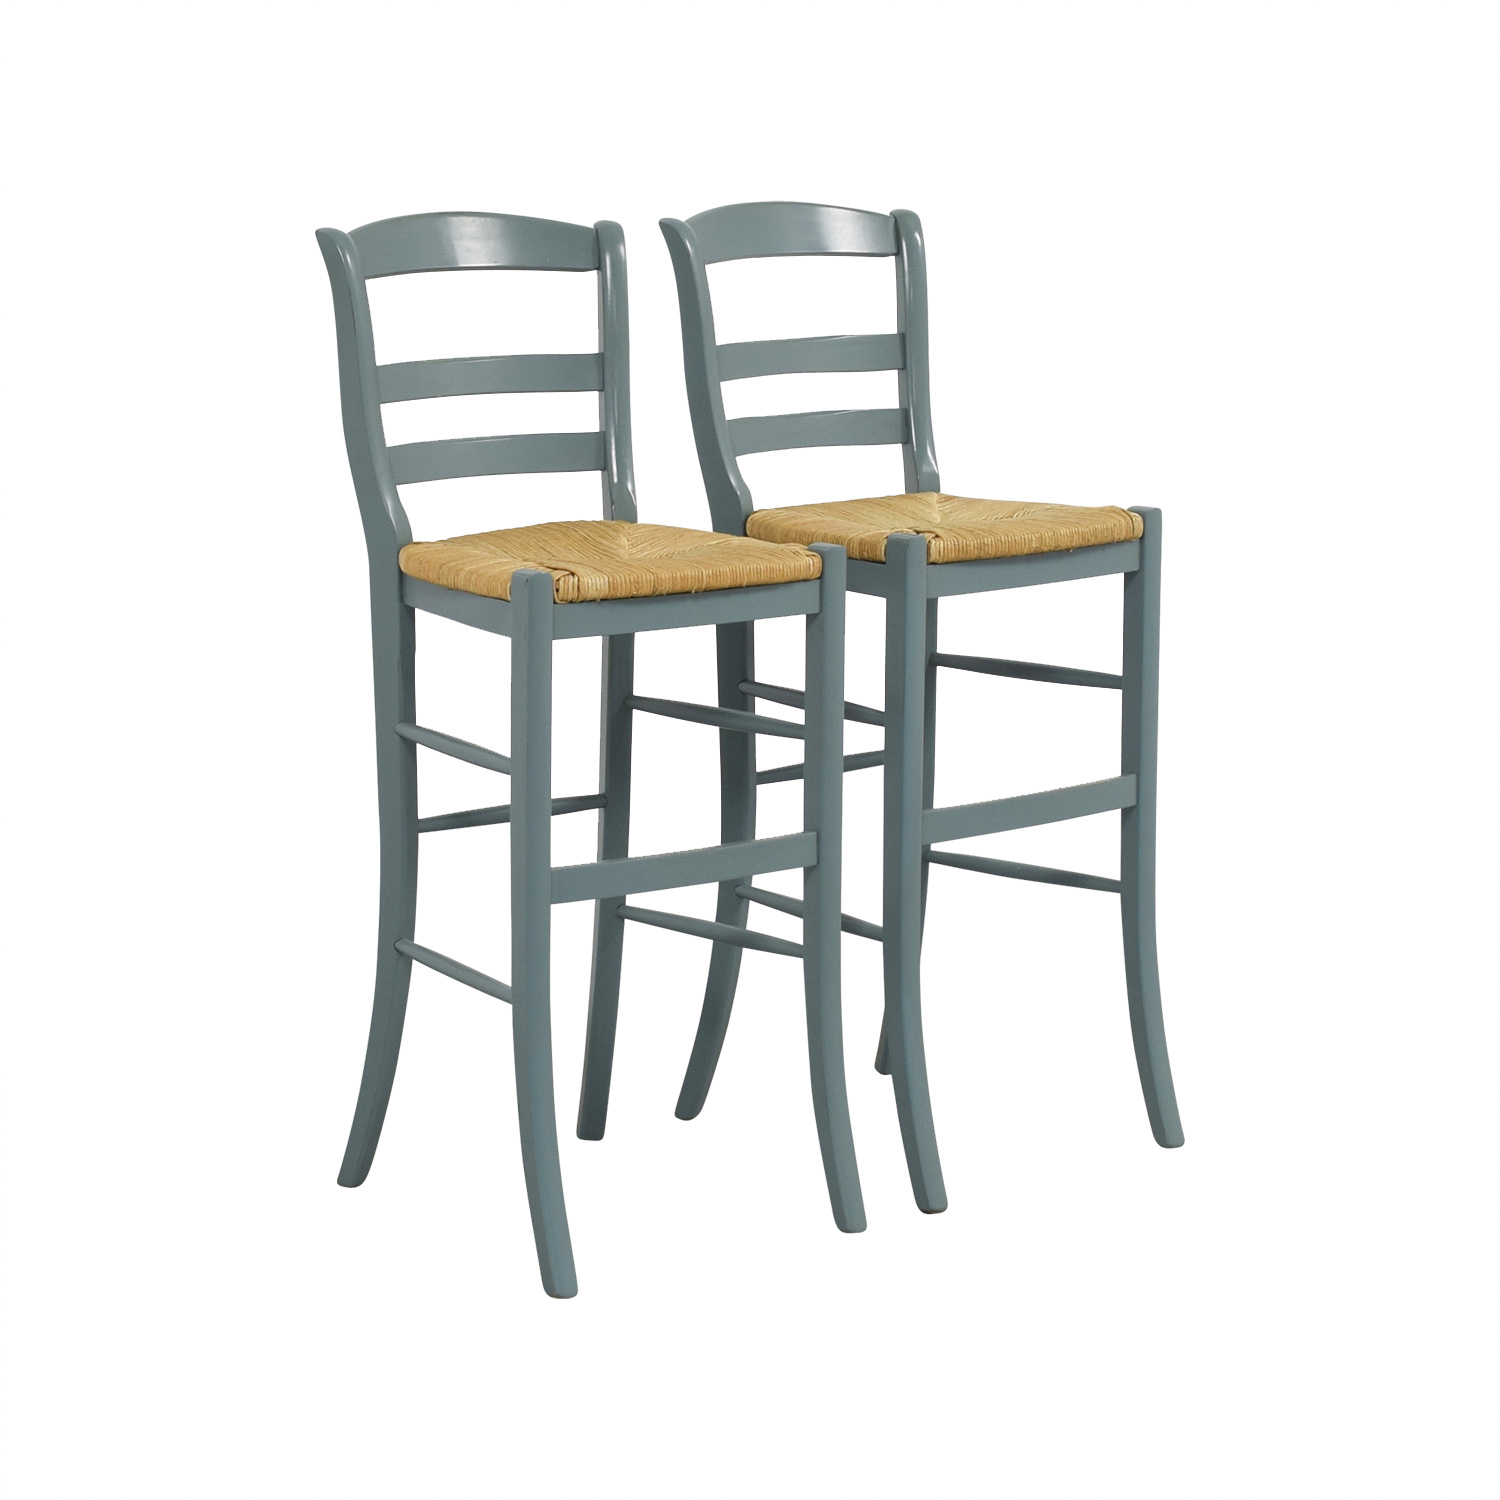 Miraculous 77 Off Pottery Barn Pottery Barn Isabella Wood Bar Stools Chairs Machost Co Dining Chair Design Ideas Machostcouk